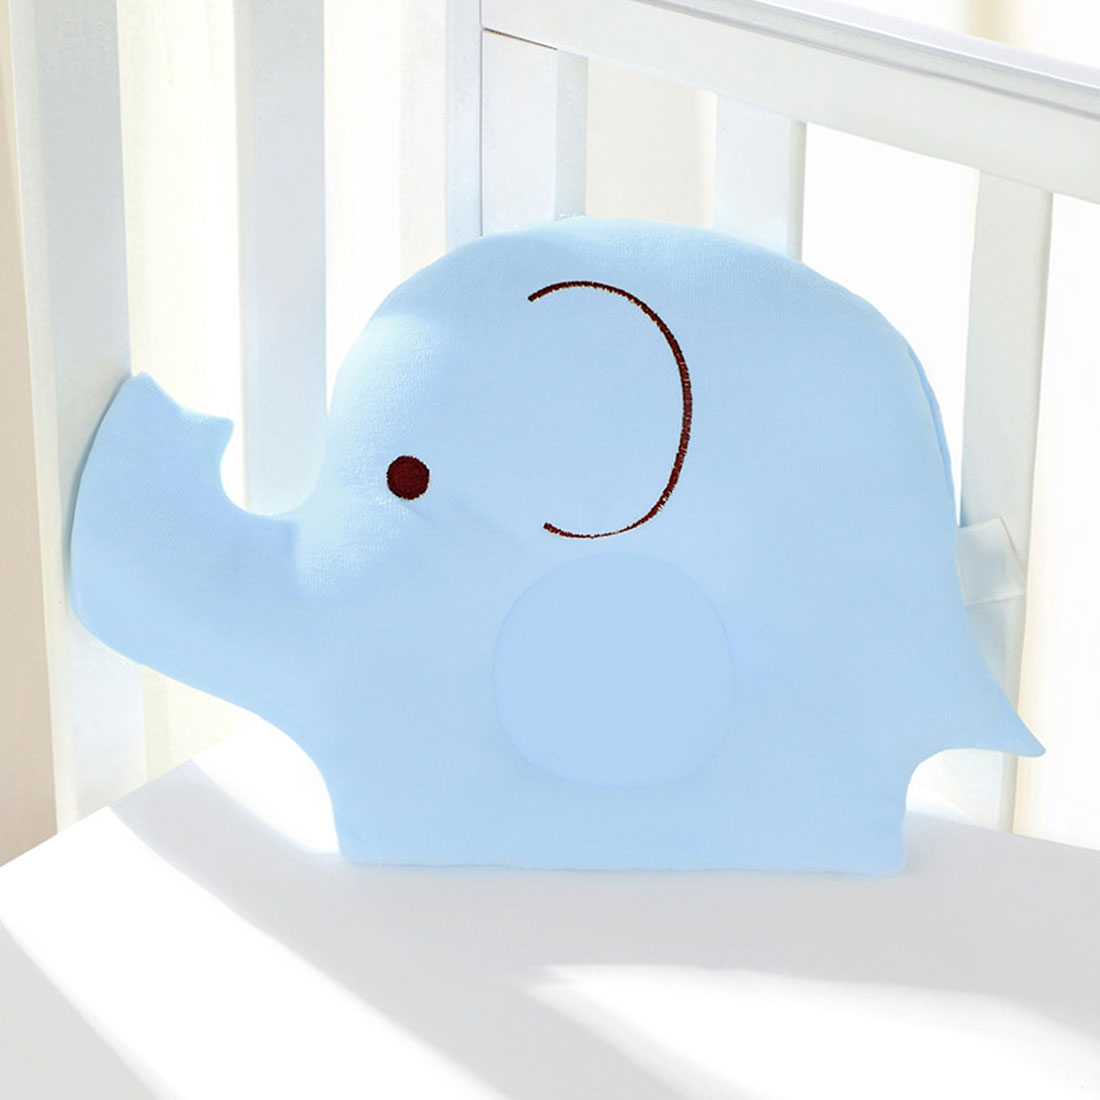 0 24M Newborn Baby Pillow Flat Head Sleeping Positioner Support Cushion Prevent Elephant Styling Pillow Gift in Pillow from Mother Kids